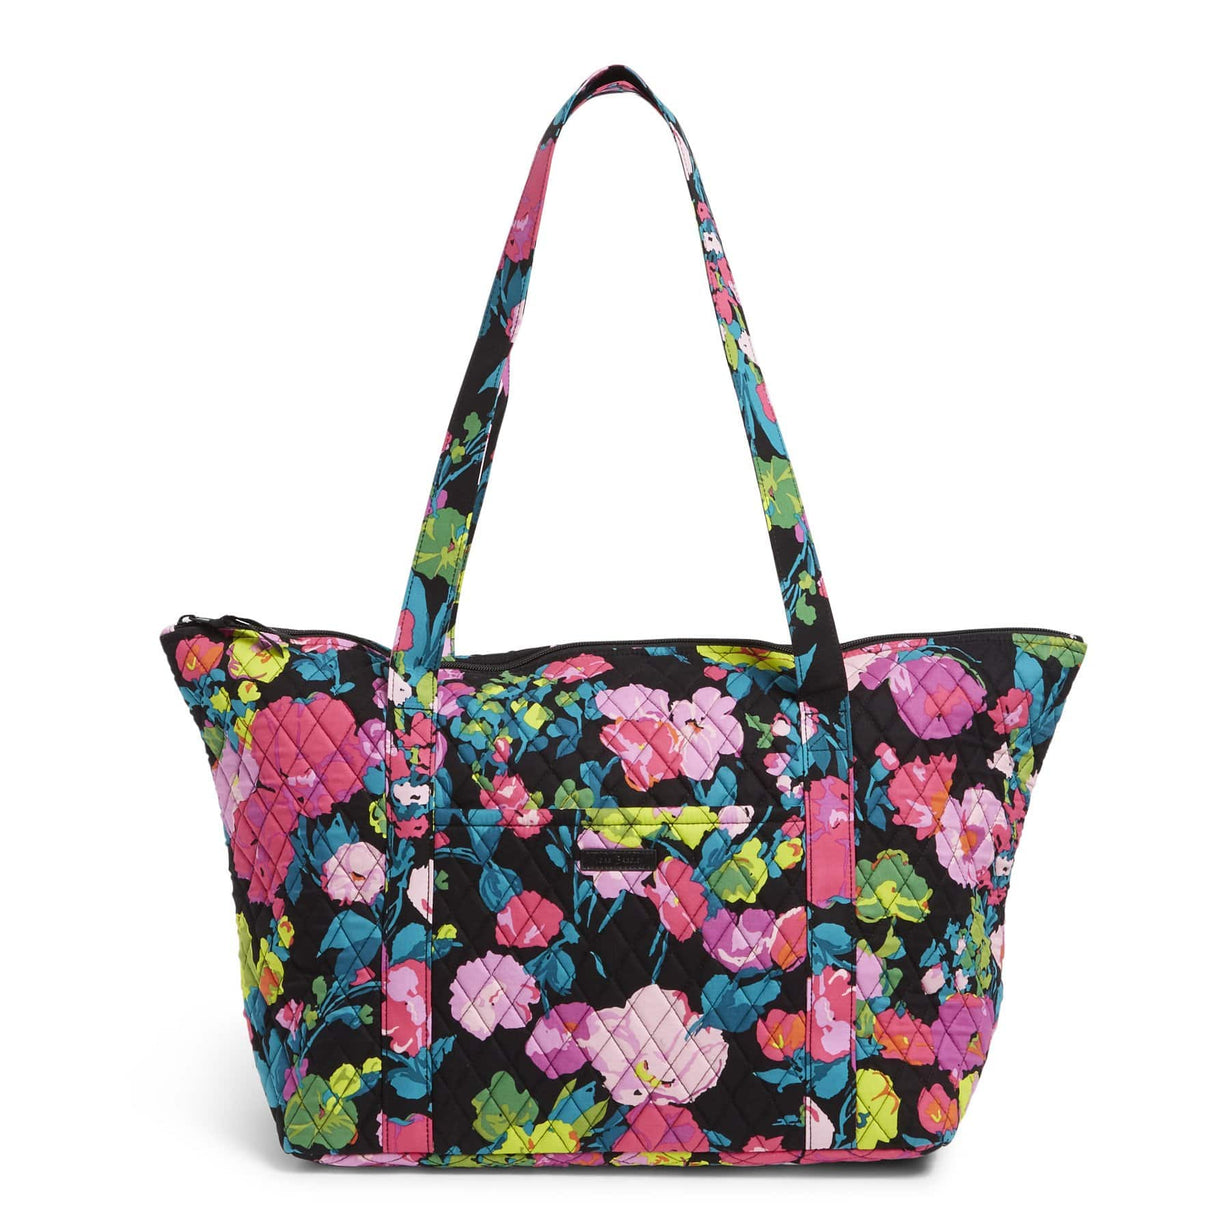 Vera Bradley Factory Style Carry-On Travel Tote Bag